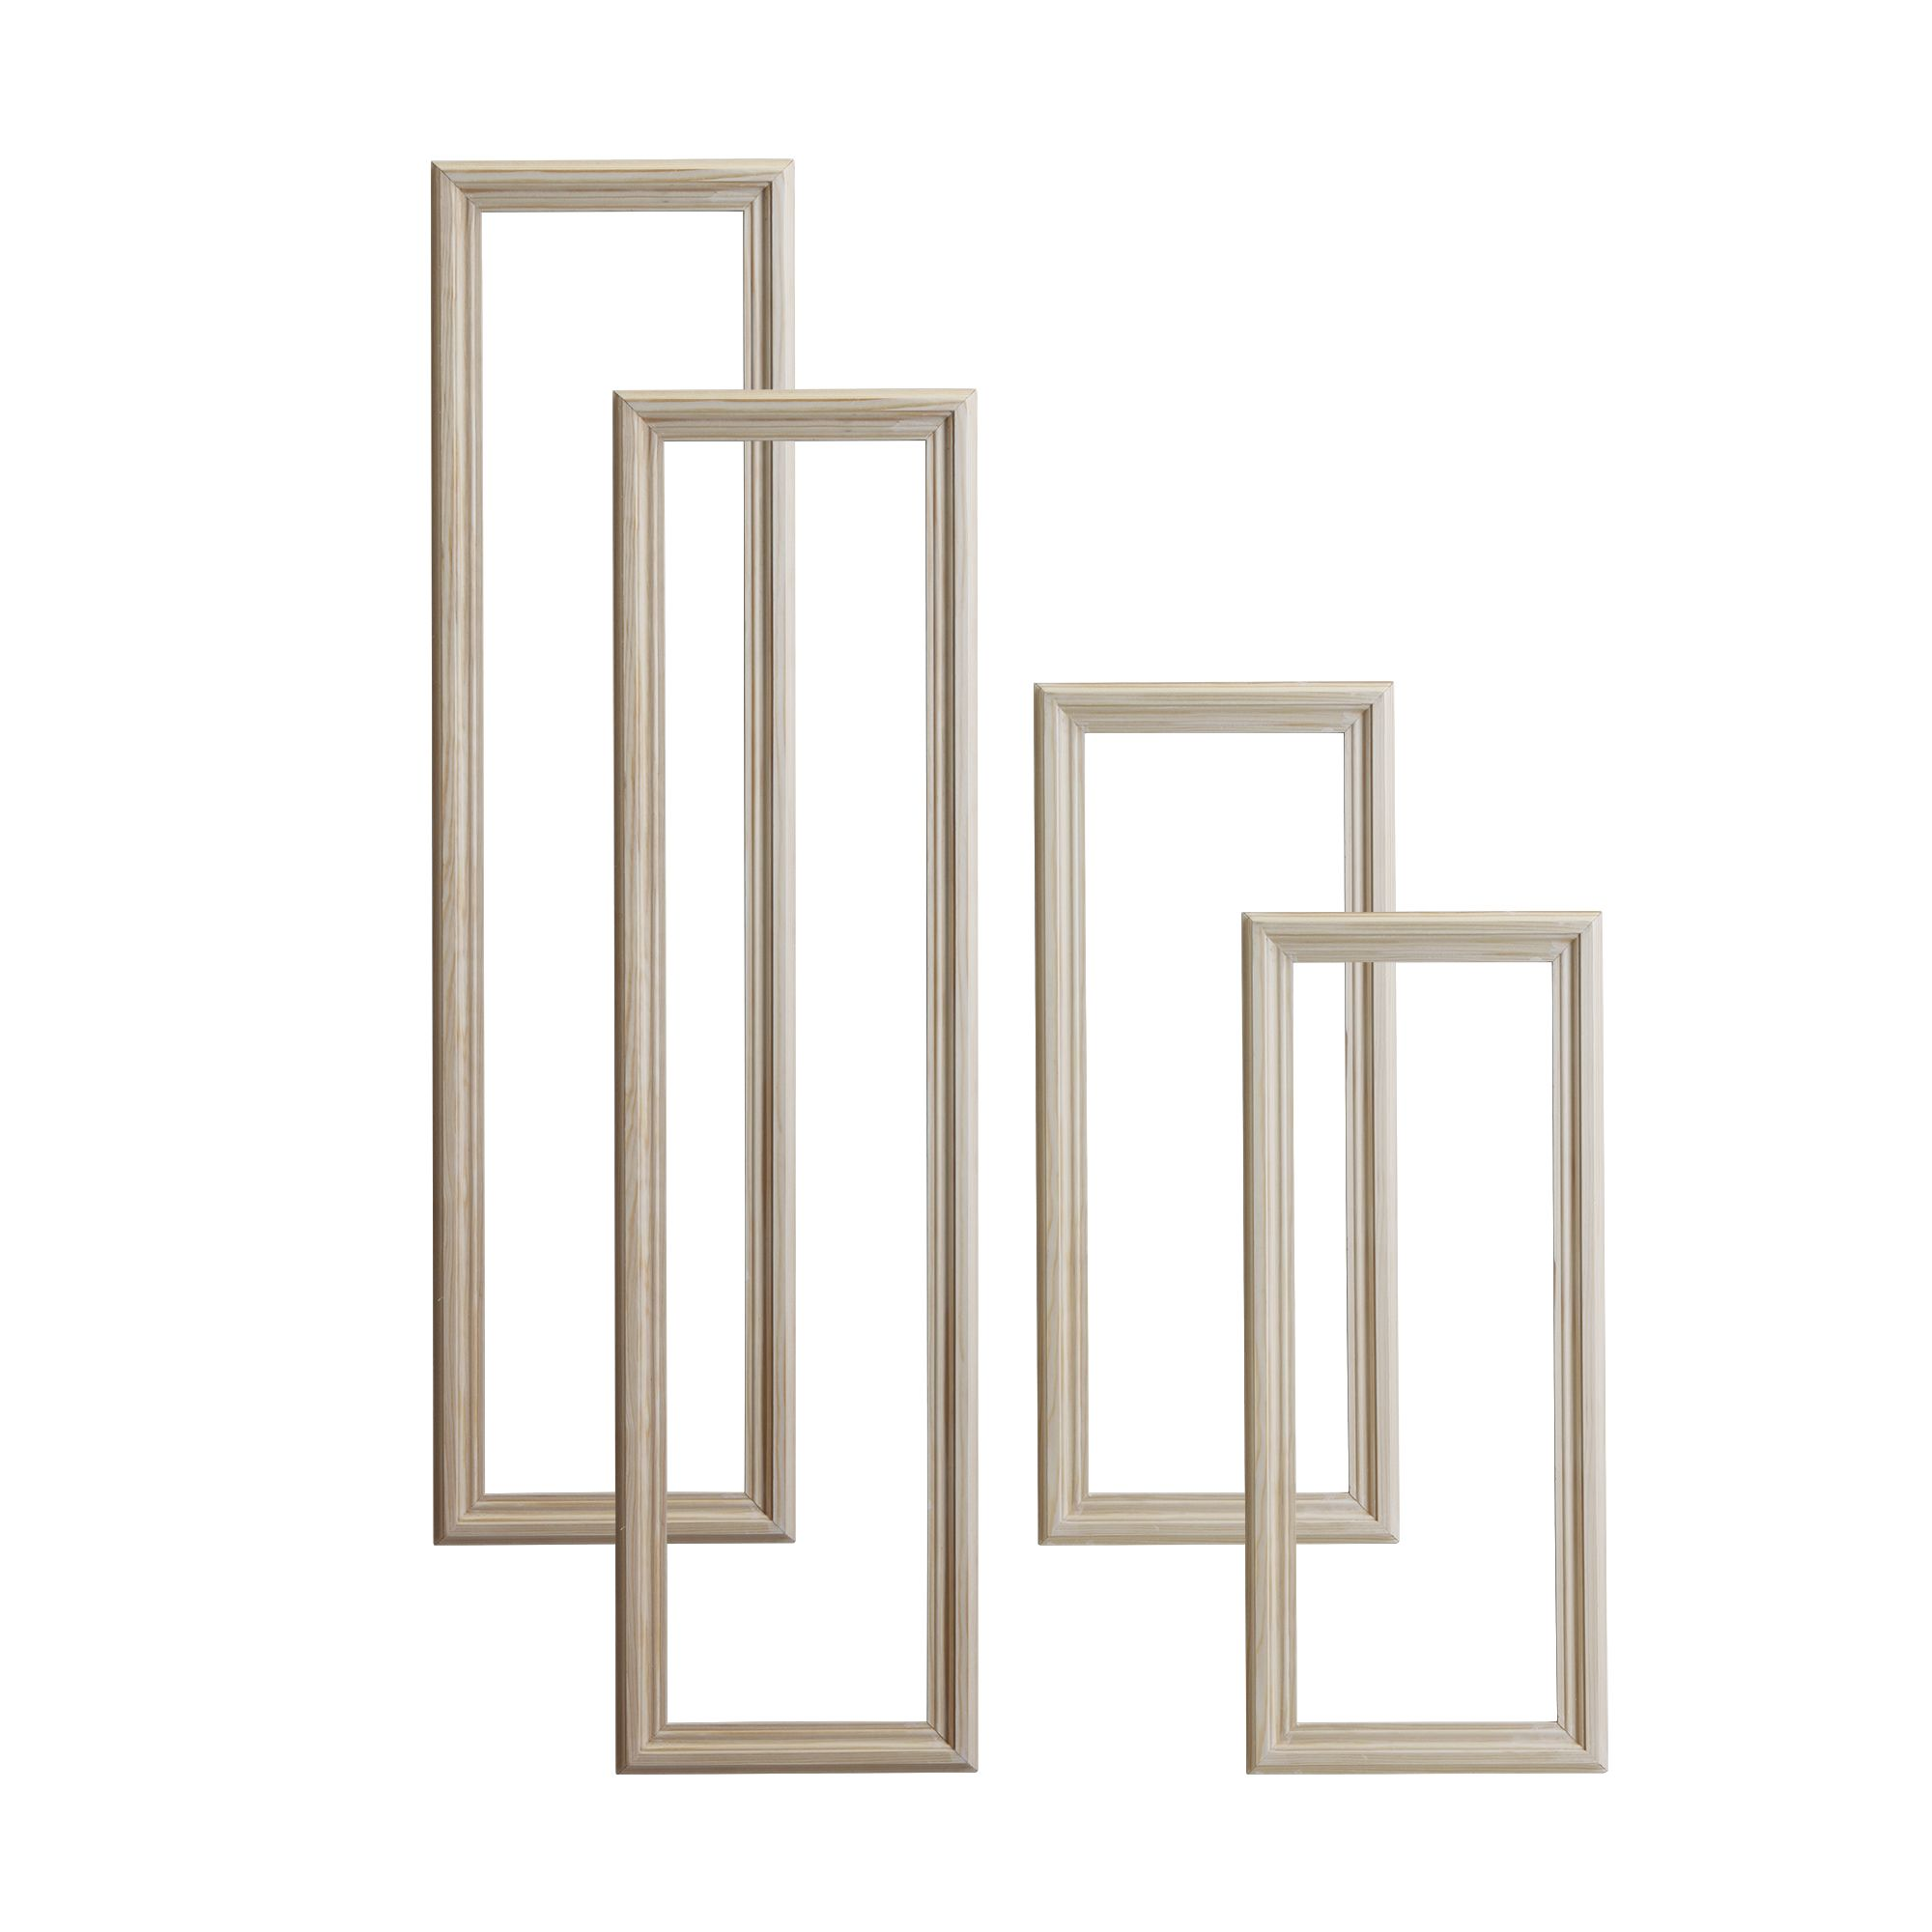 Pine 4 Panel Door Moulding Kit Departments DIY At BampQ